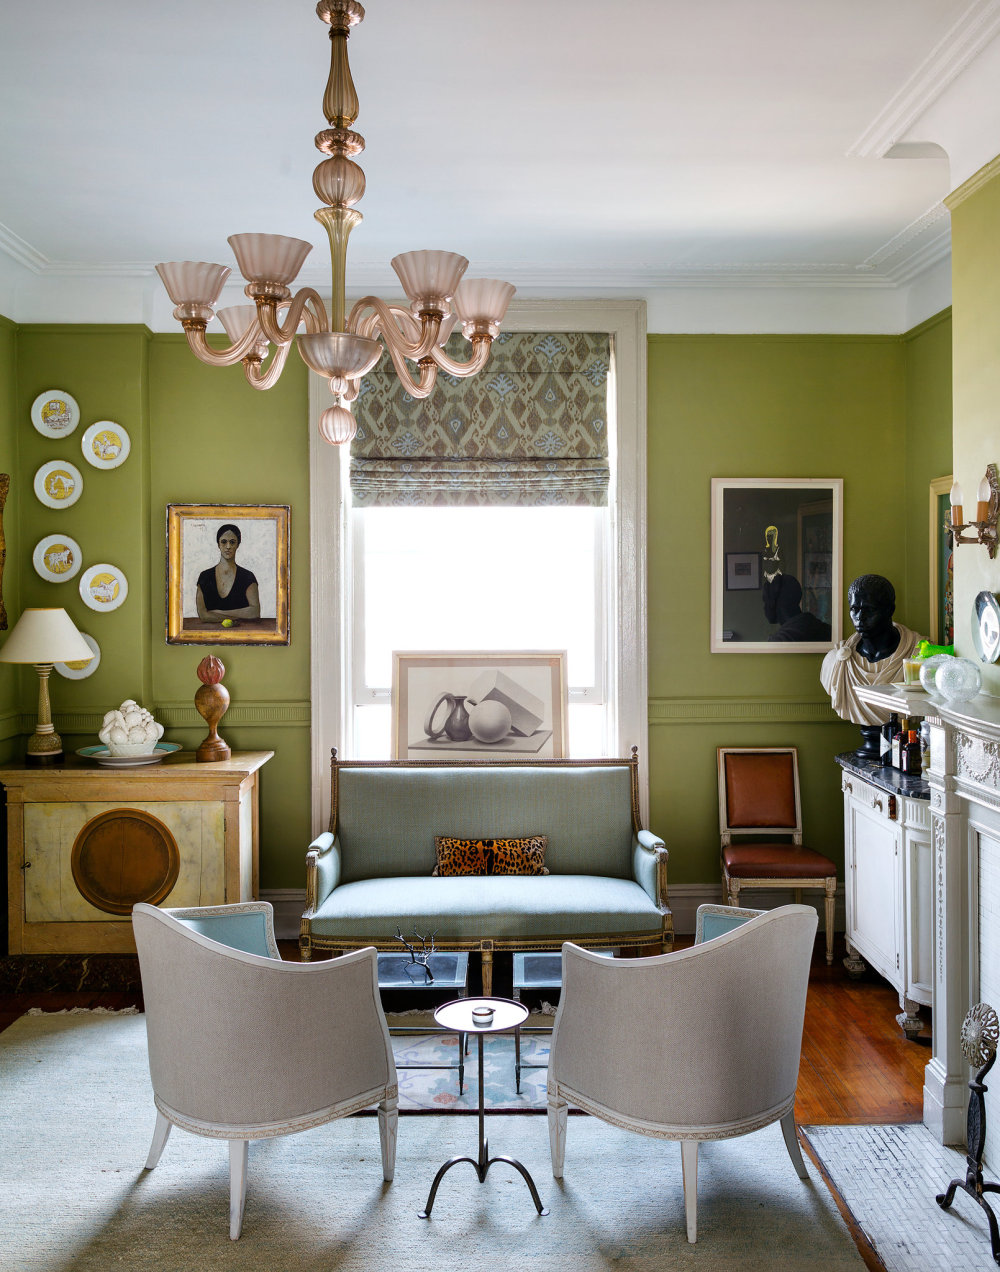 Decor inspiration | At Home With Sheila Bridges, Harlem ...